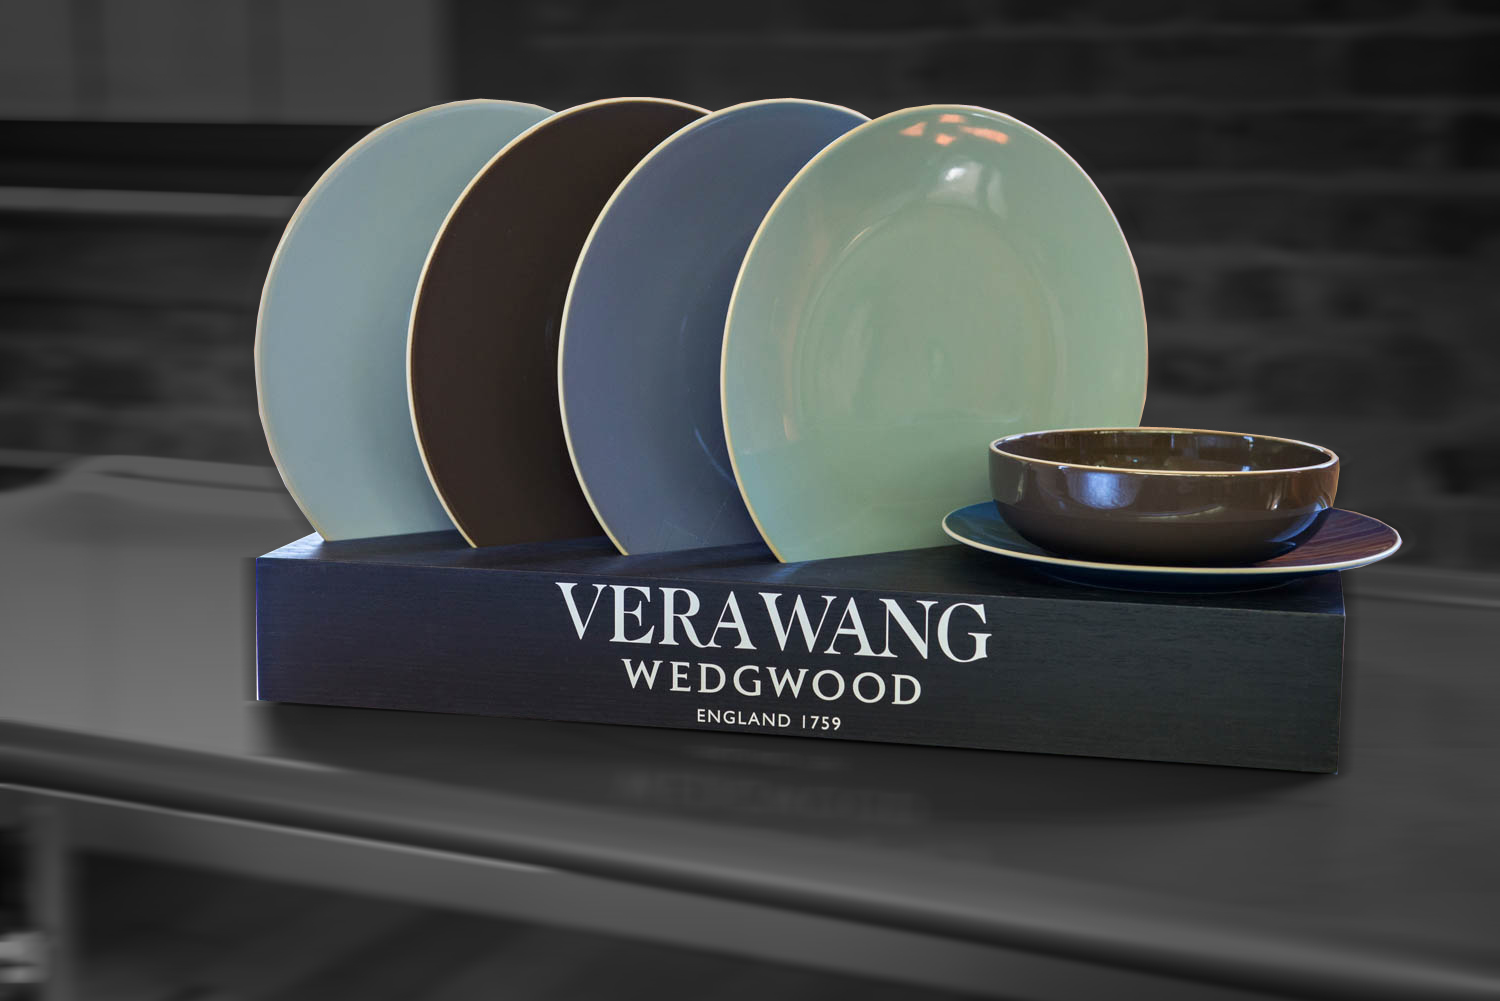 Vera Wang - In Store Displays